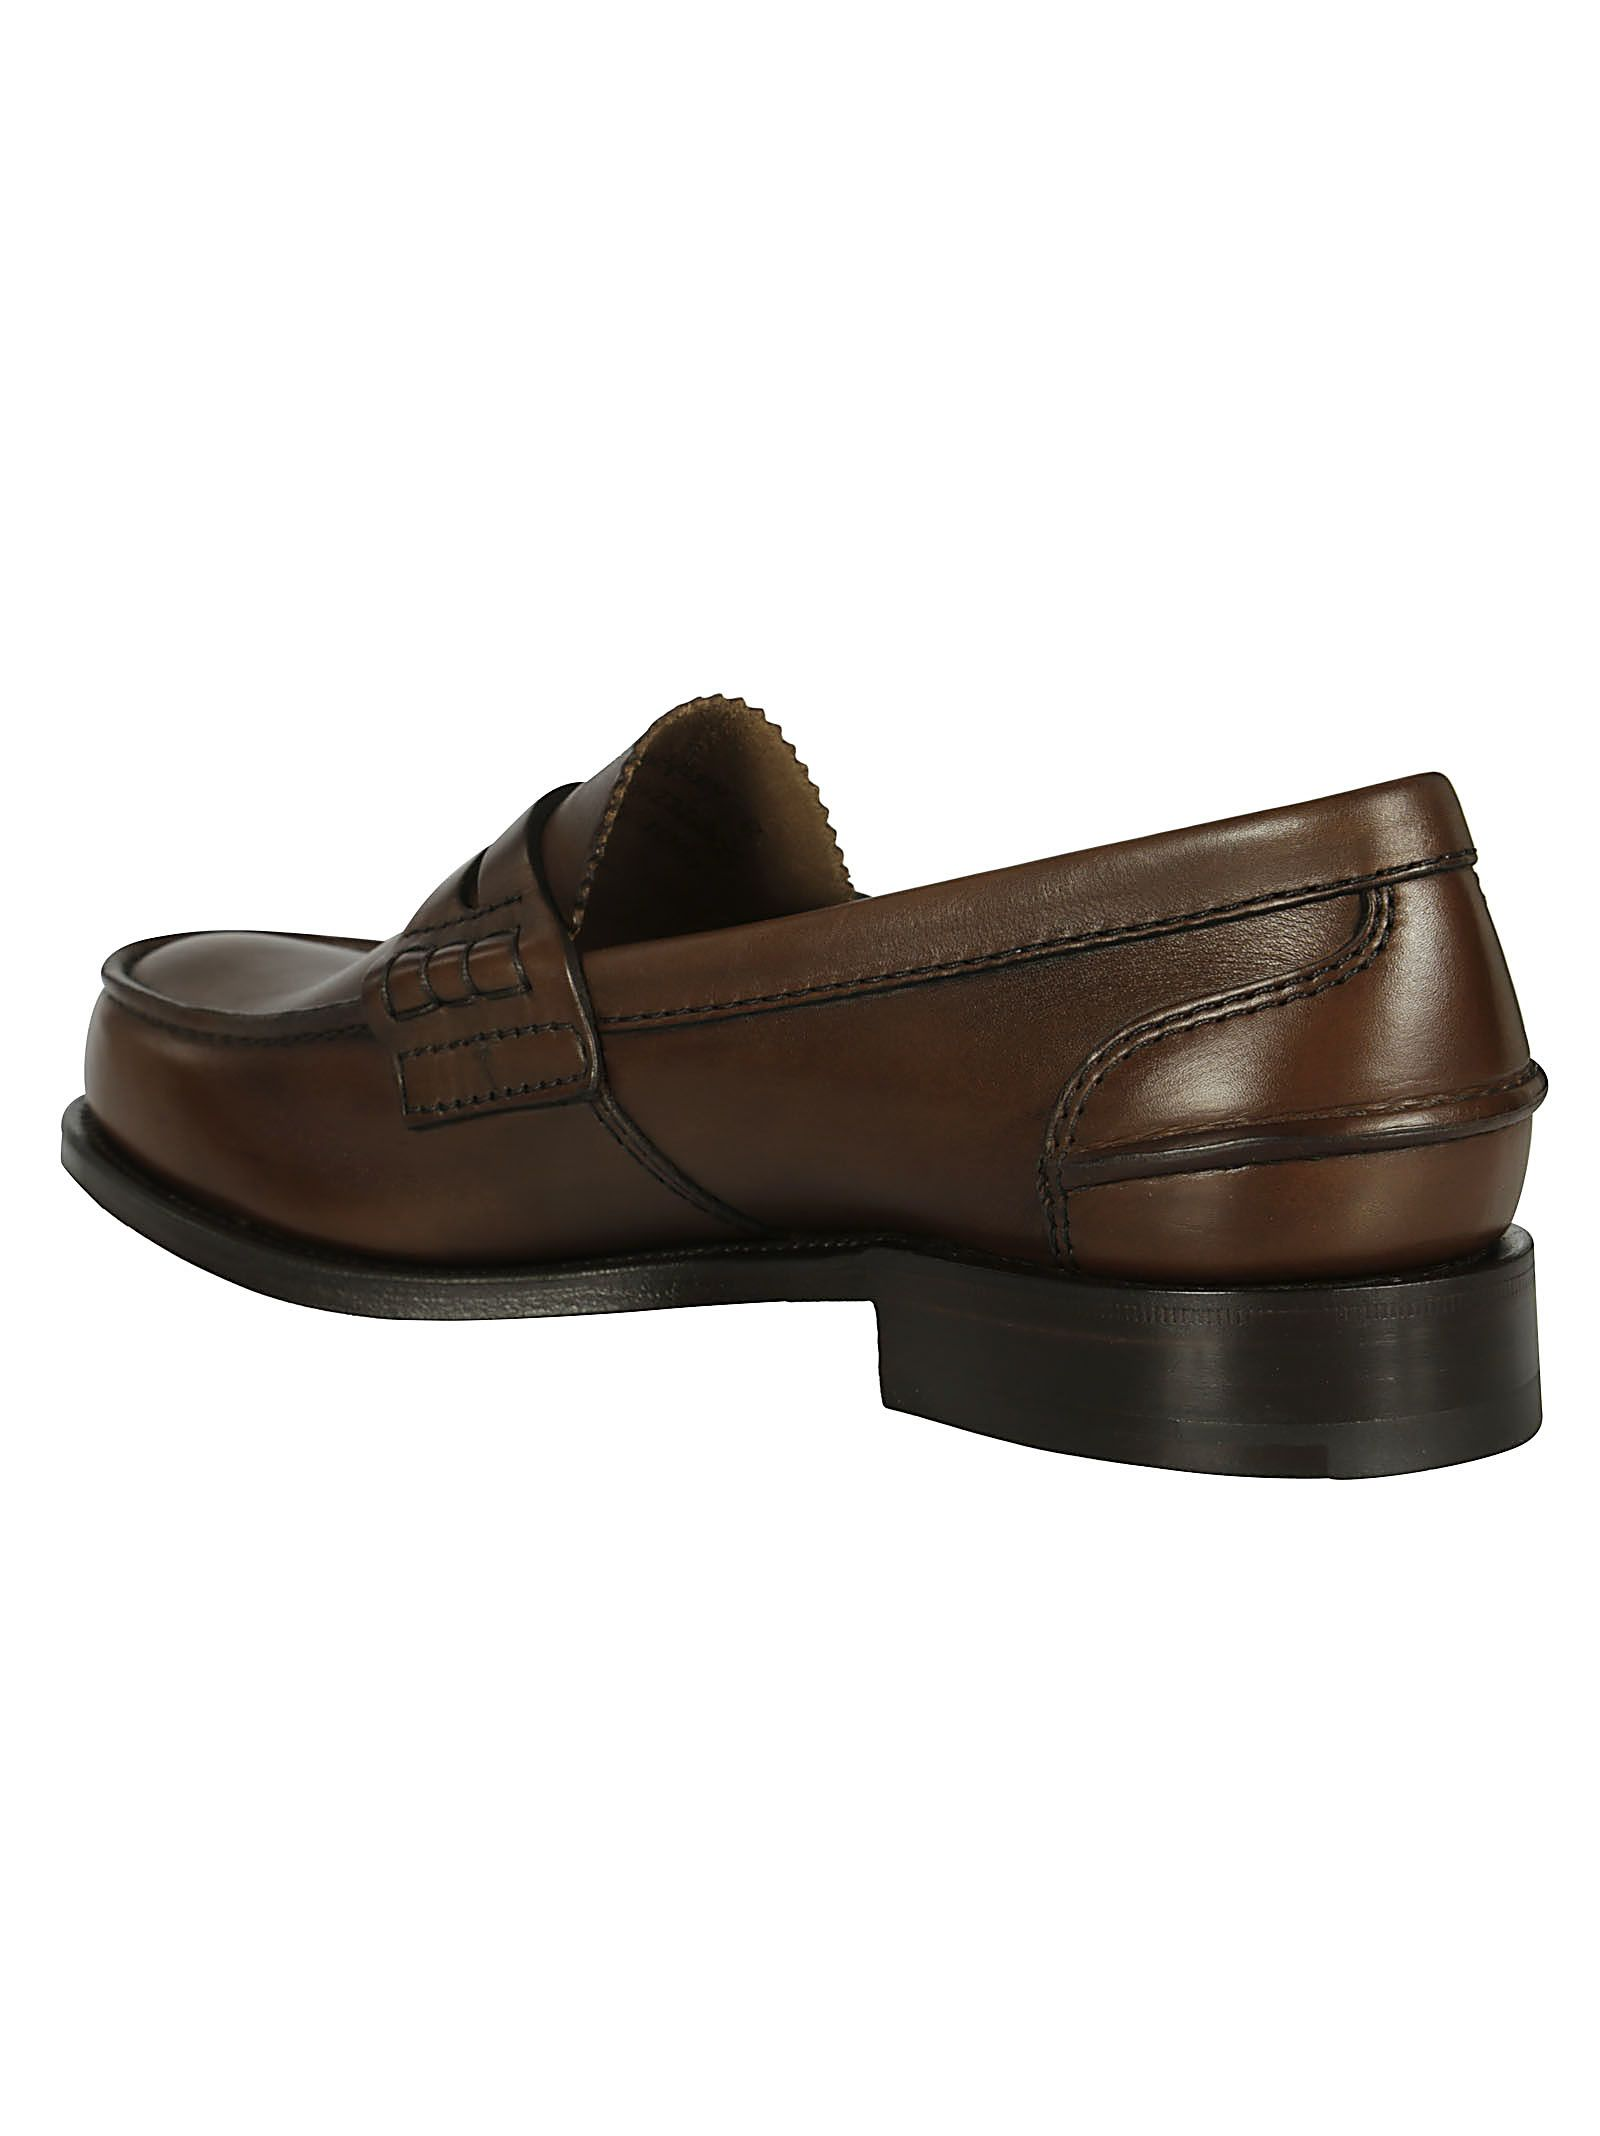 Loafers for Men On Sale in Outlet, Cognac, Leather, 2017, 7.5 Churchs